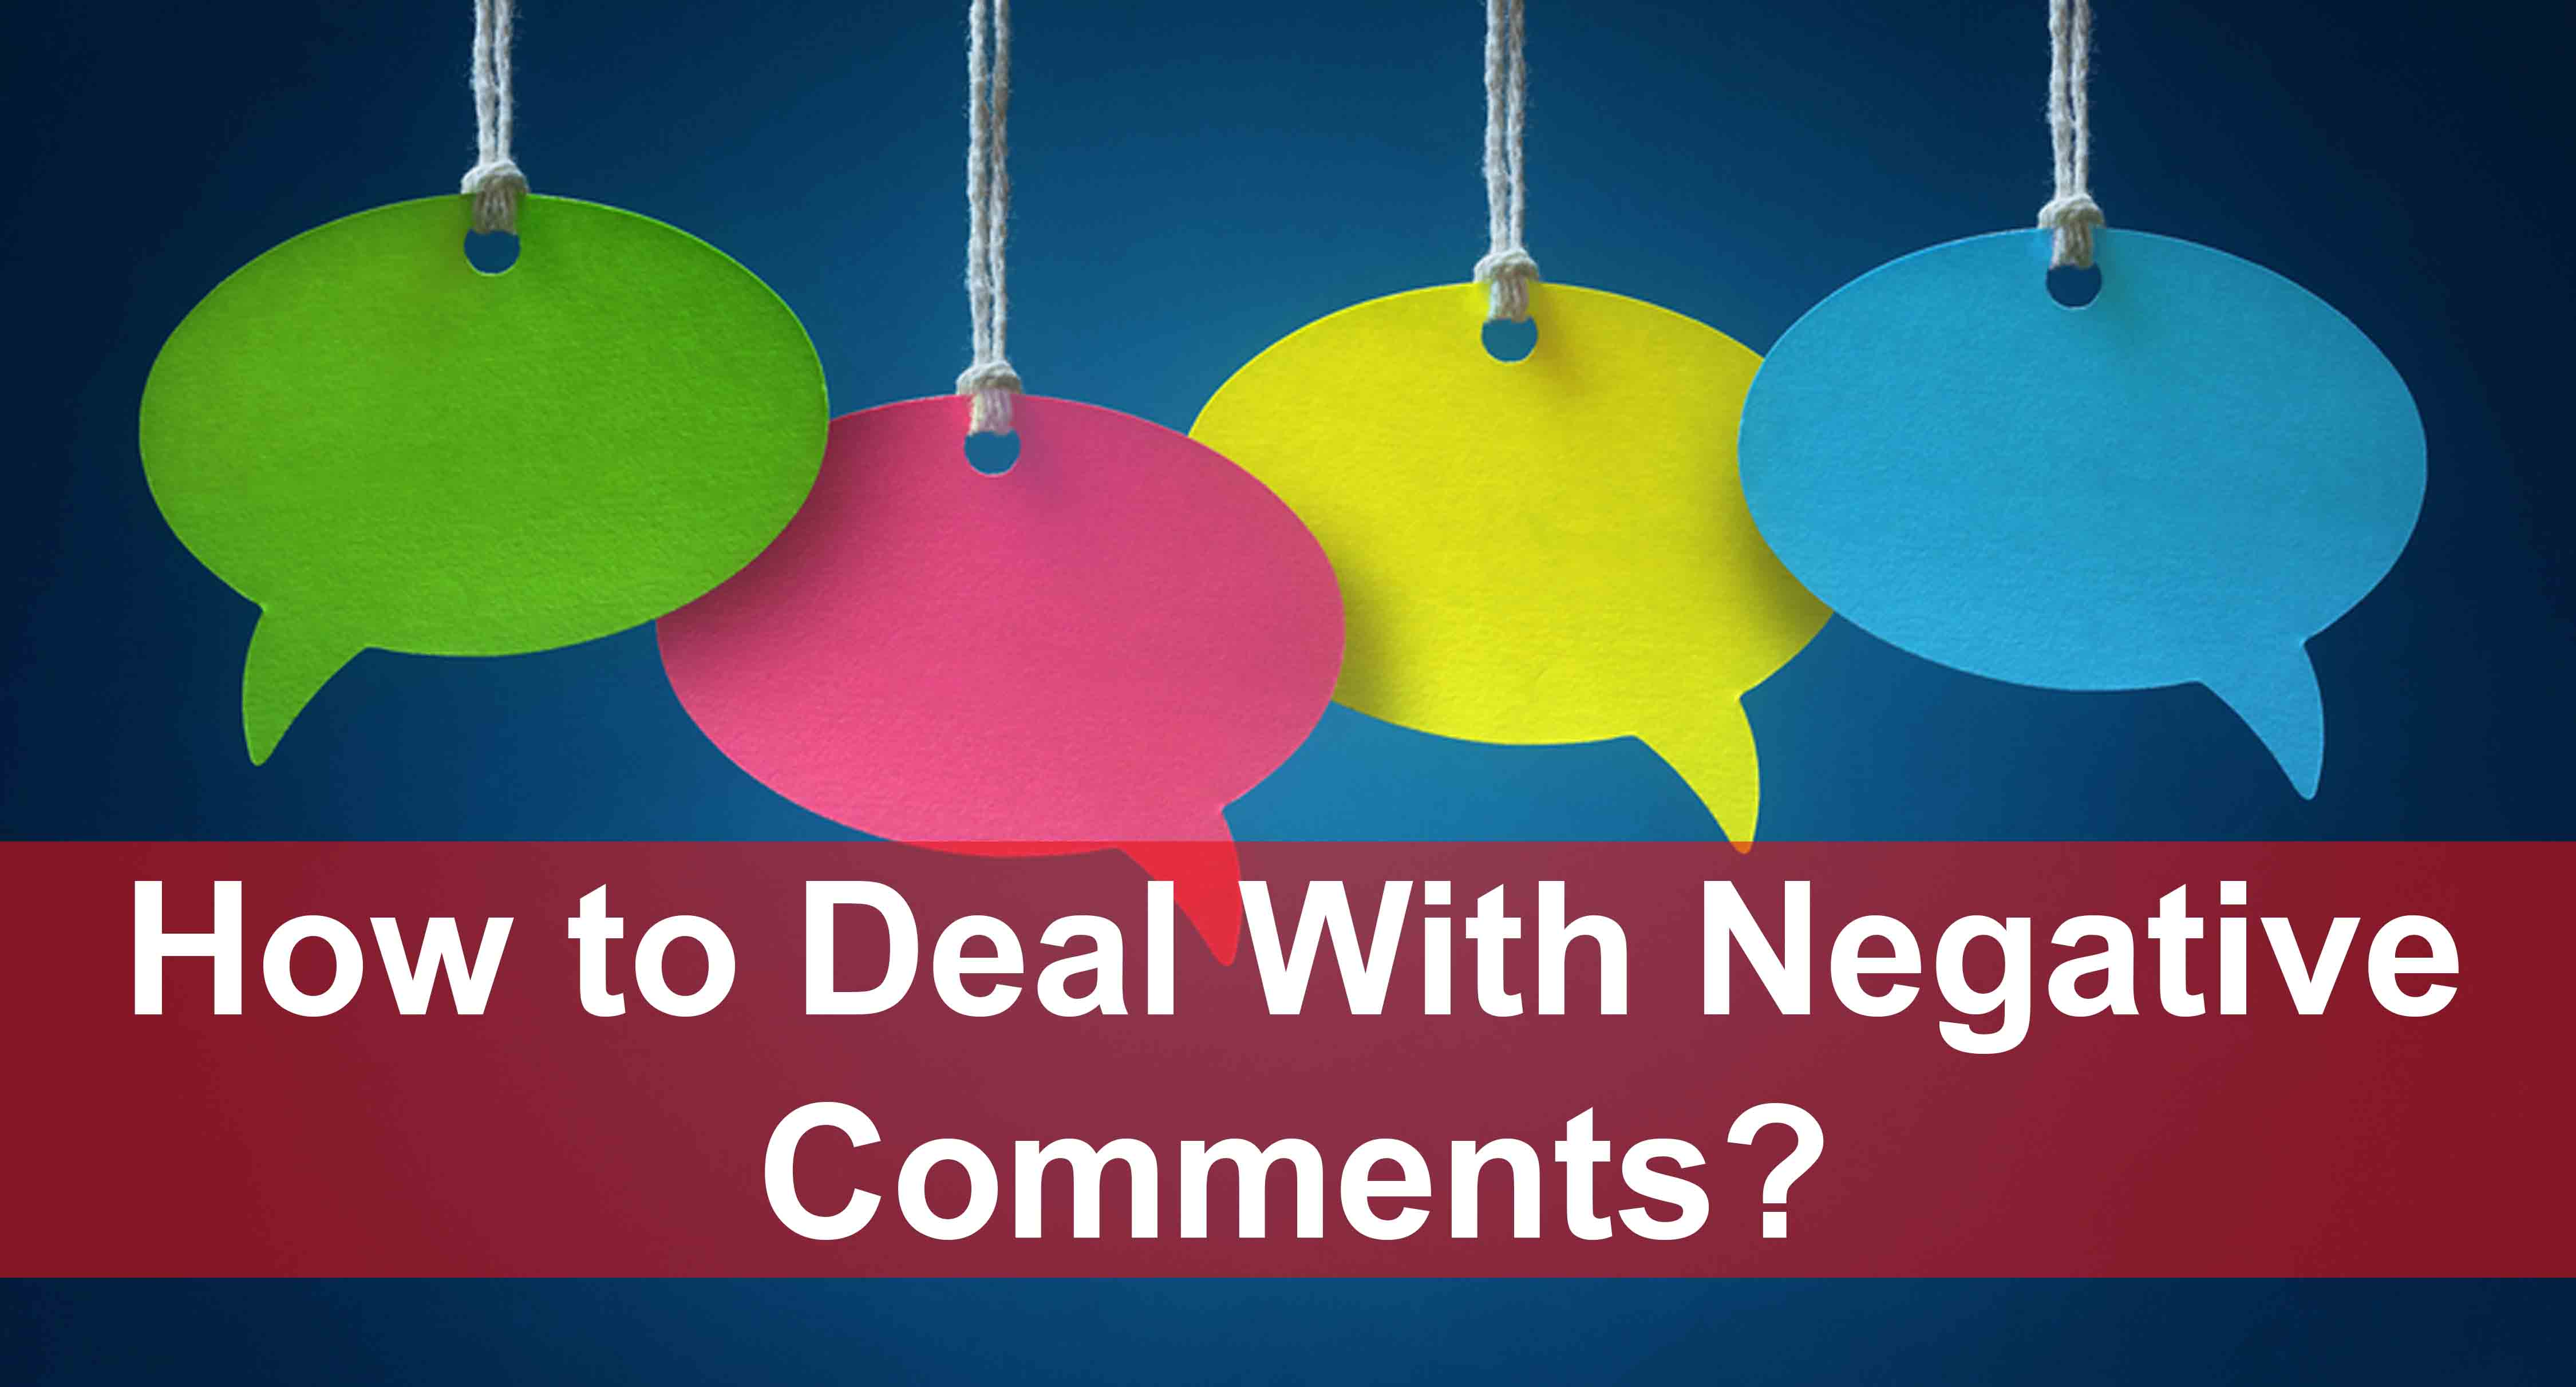 How to Deal With Negative Comments